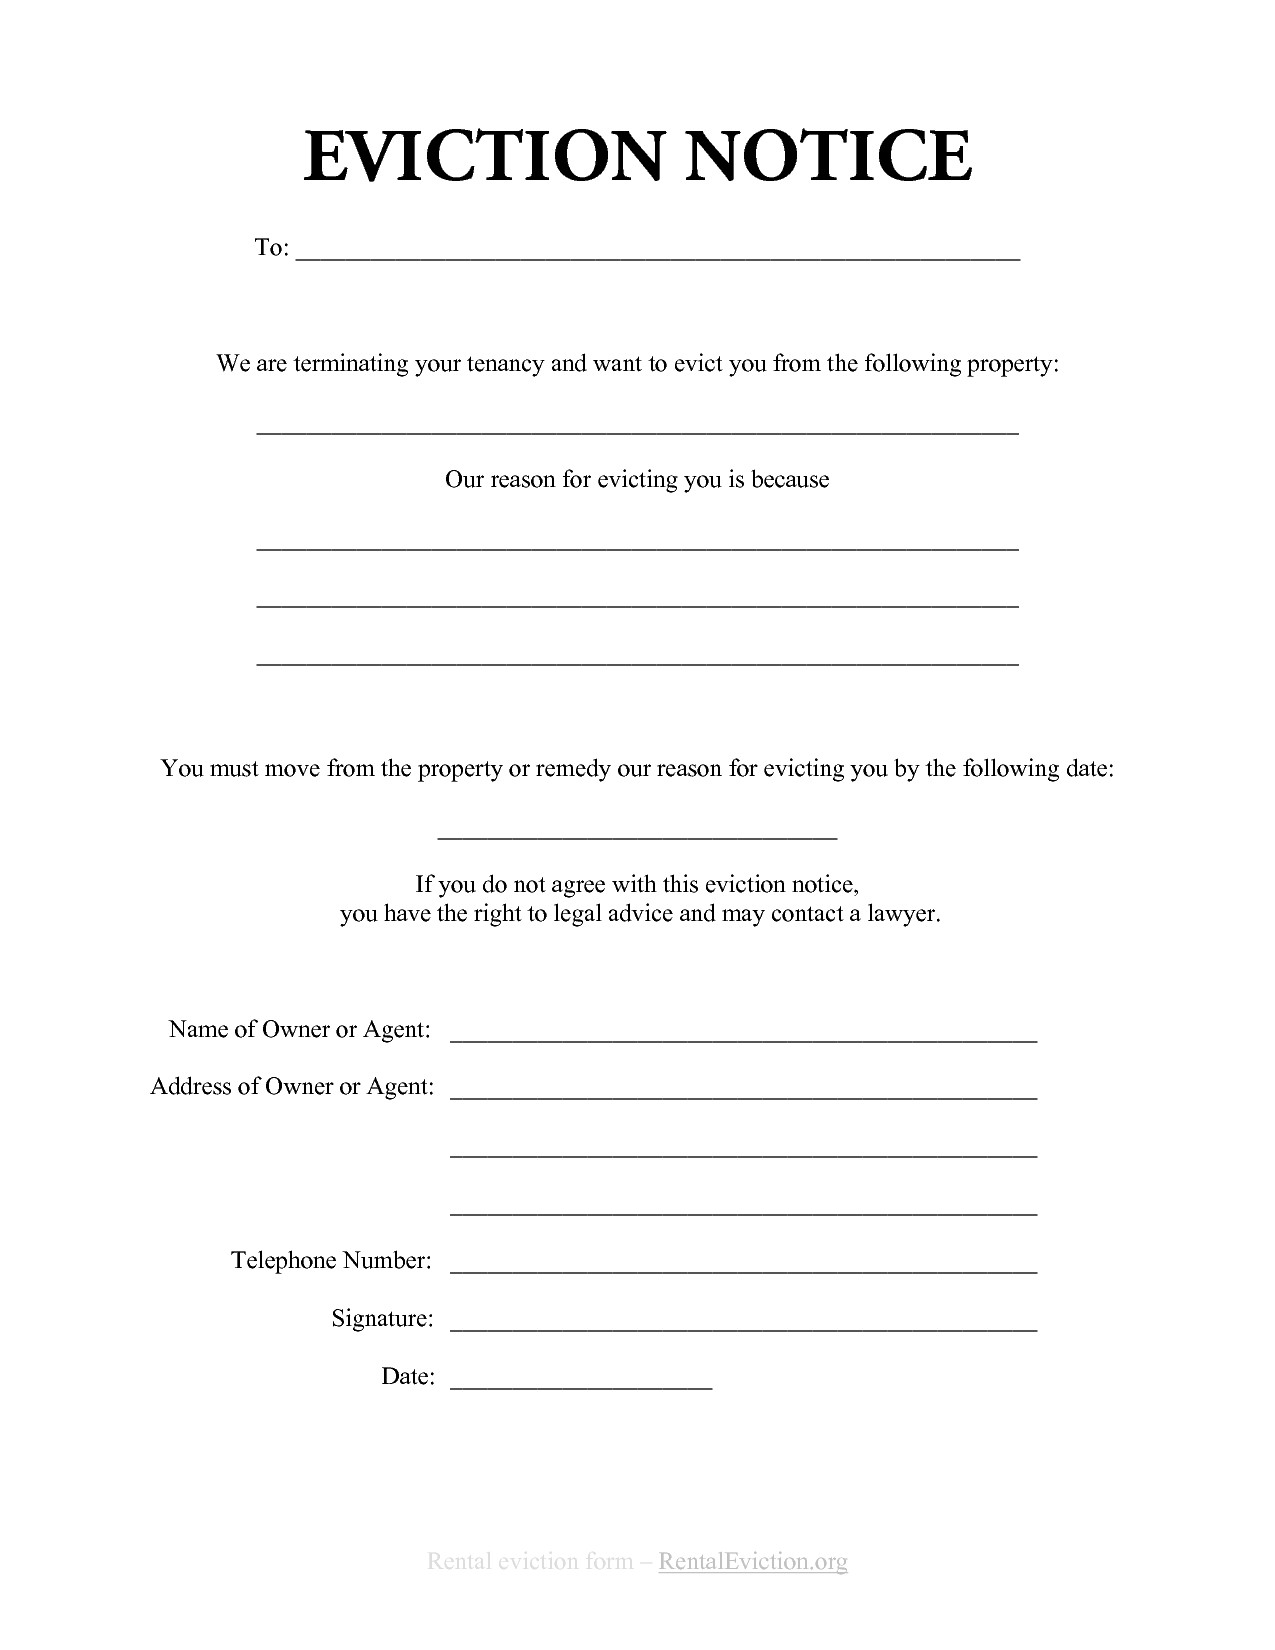 Eviction Notice Template Alabama Free Print Out Eviction Notices